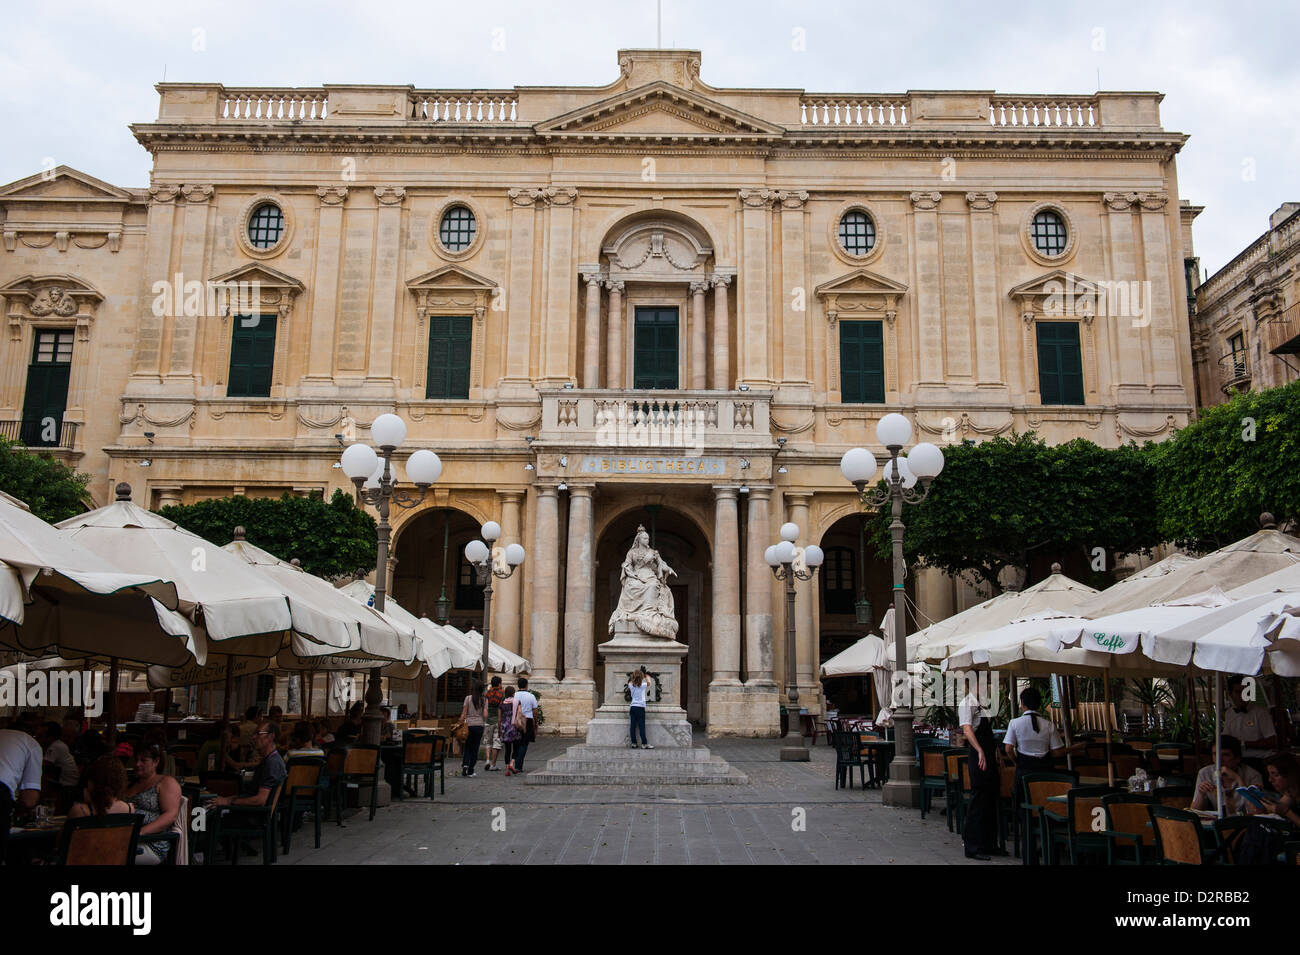 National Library with cafes in Valetta, UNESCO World Heritage Site, Malta, Europe - Stock Image